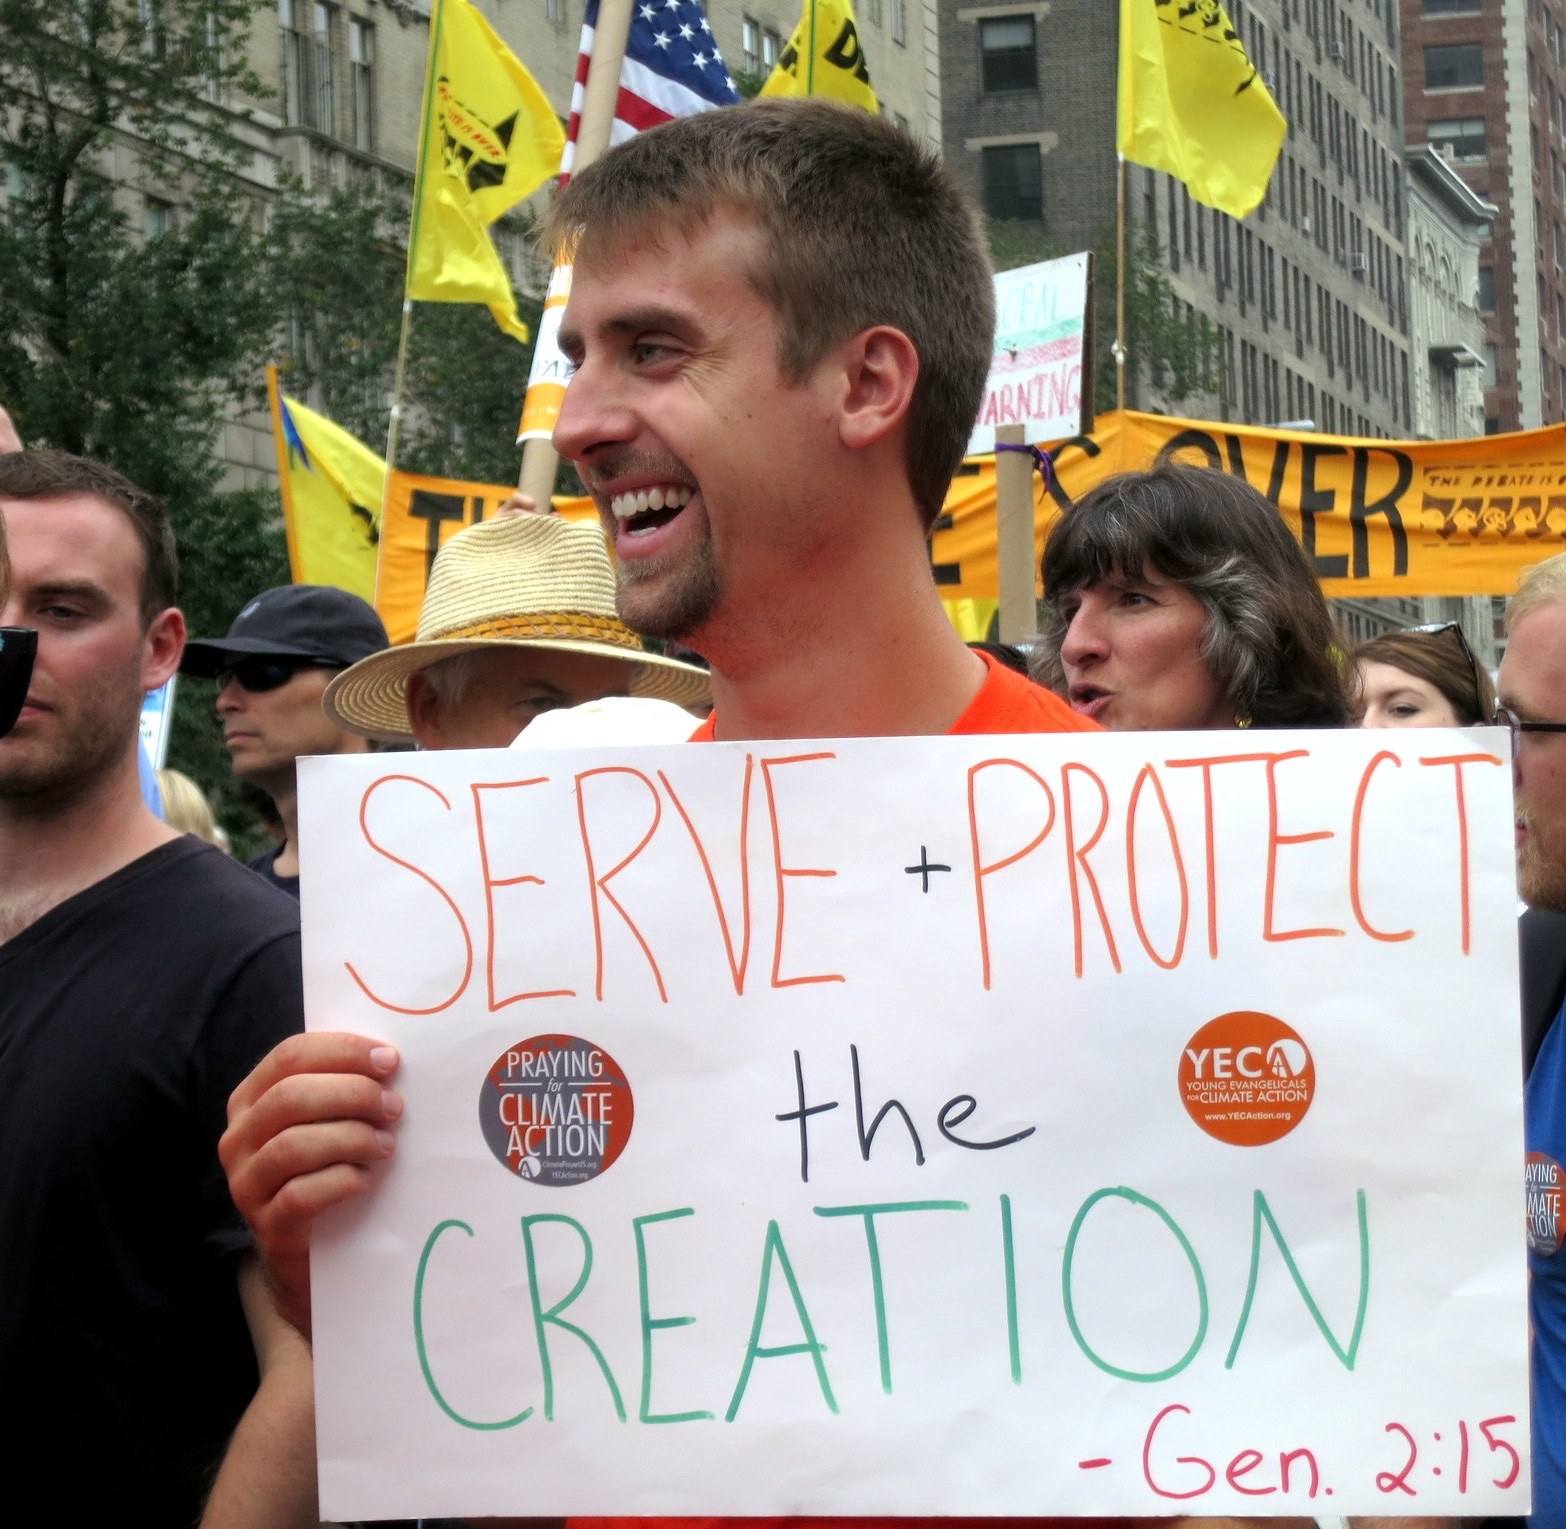 """Man holding sign reading """"serve and protect the creation, Gen. 2:15"""""""